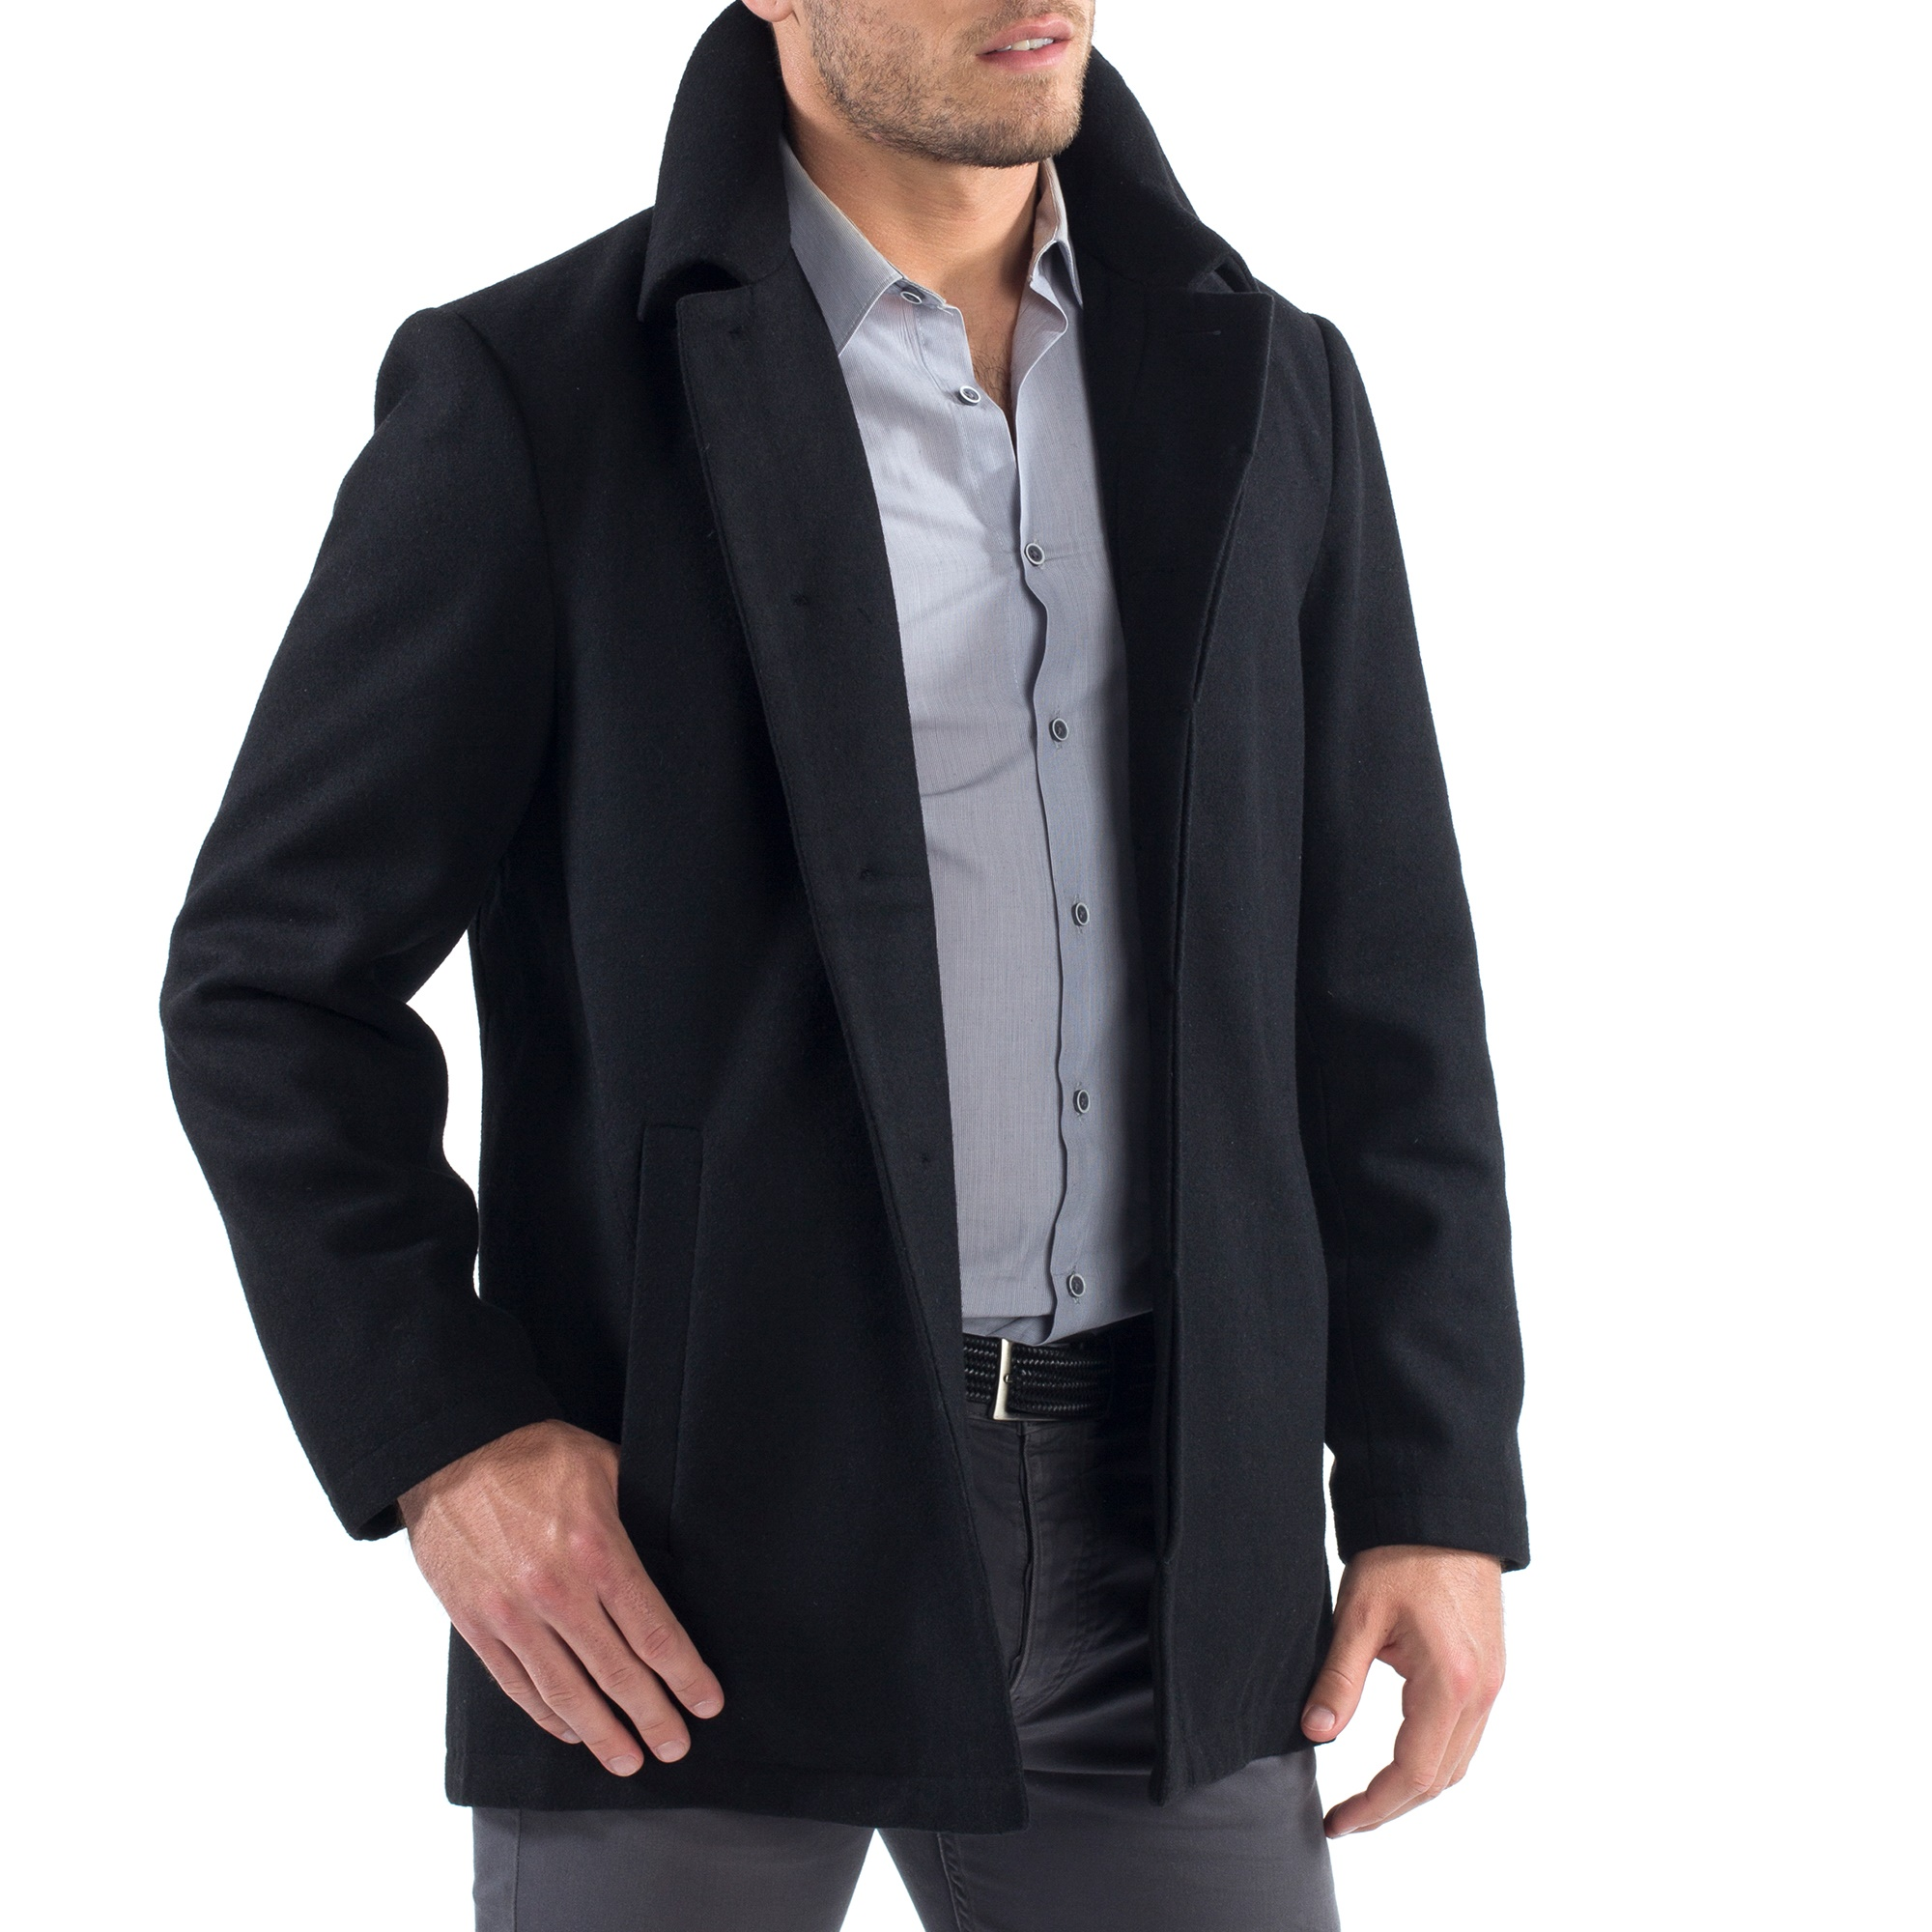 Alpine-Swiss-Vance-Mens-Jacket-Wool-Blend-Button-Up-Coat-Dress-Car-Coat-Blazer thumbnail 17